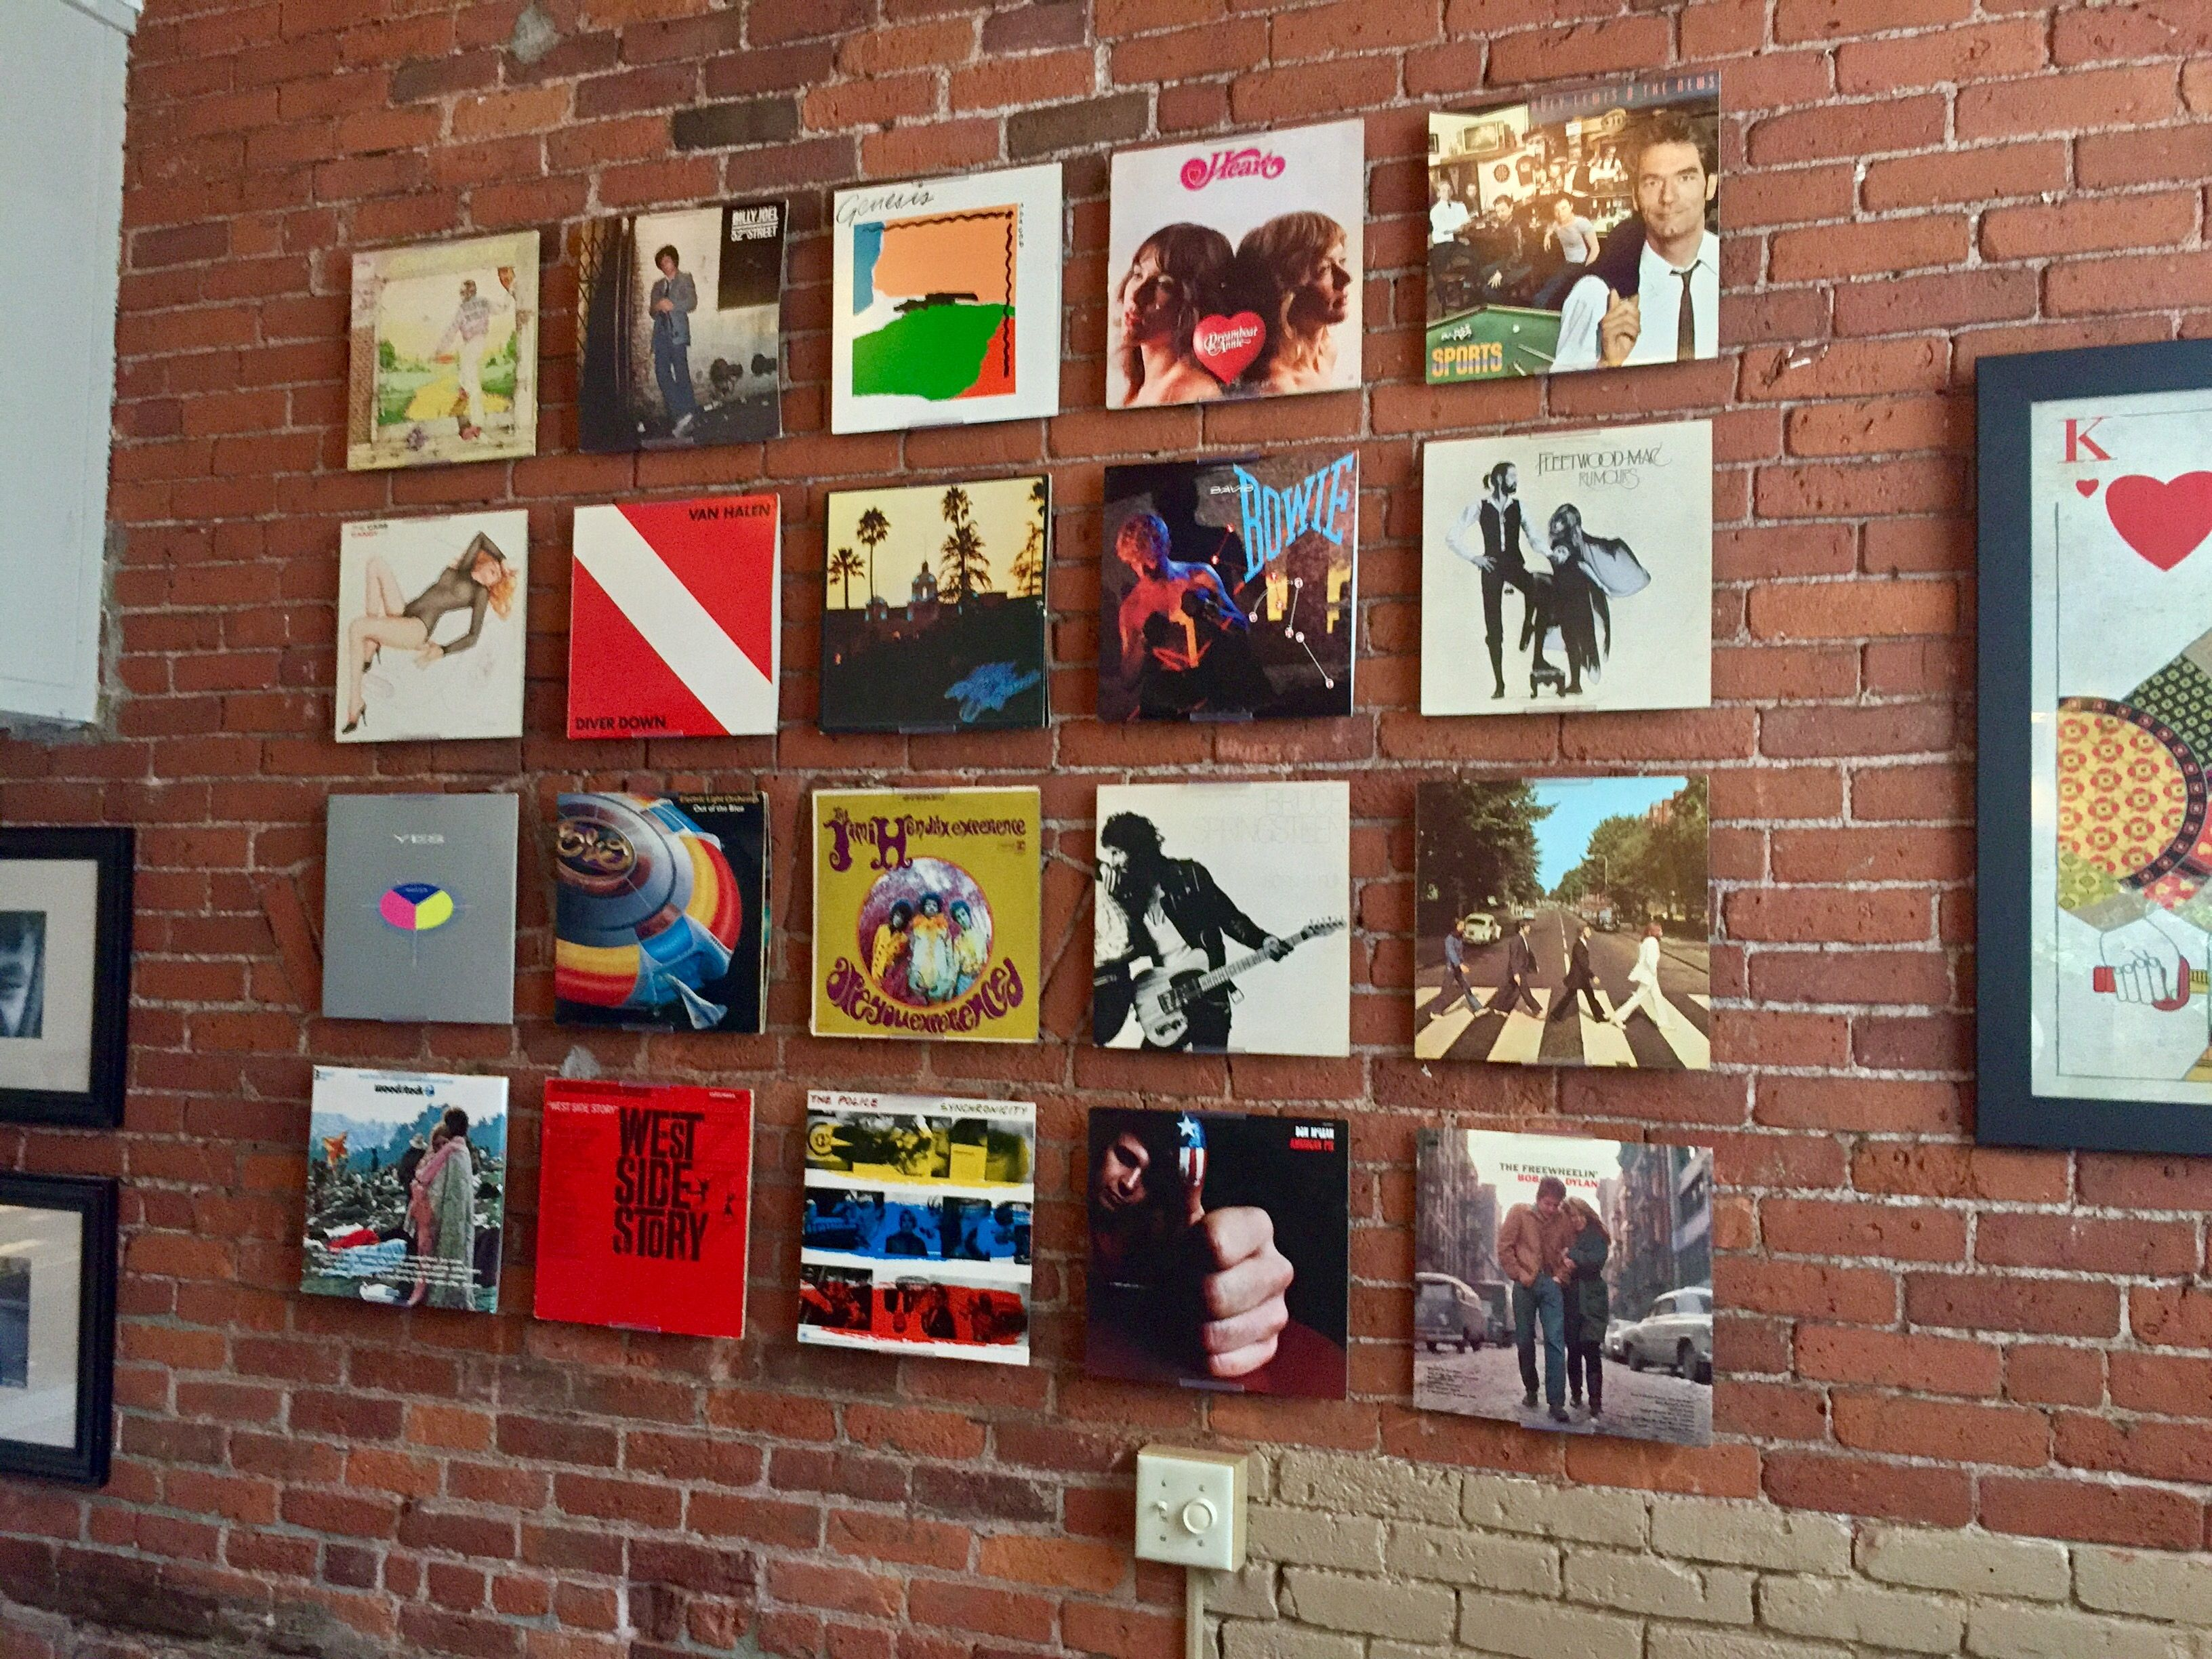 20 Record Albums On Wall Is A Great Way To Add Design To Your Home Albummount Allows You To Display Record Record Wall Art Record Wall Display Cafe Wall Art